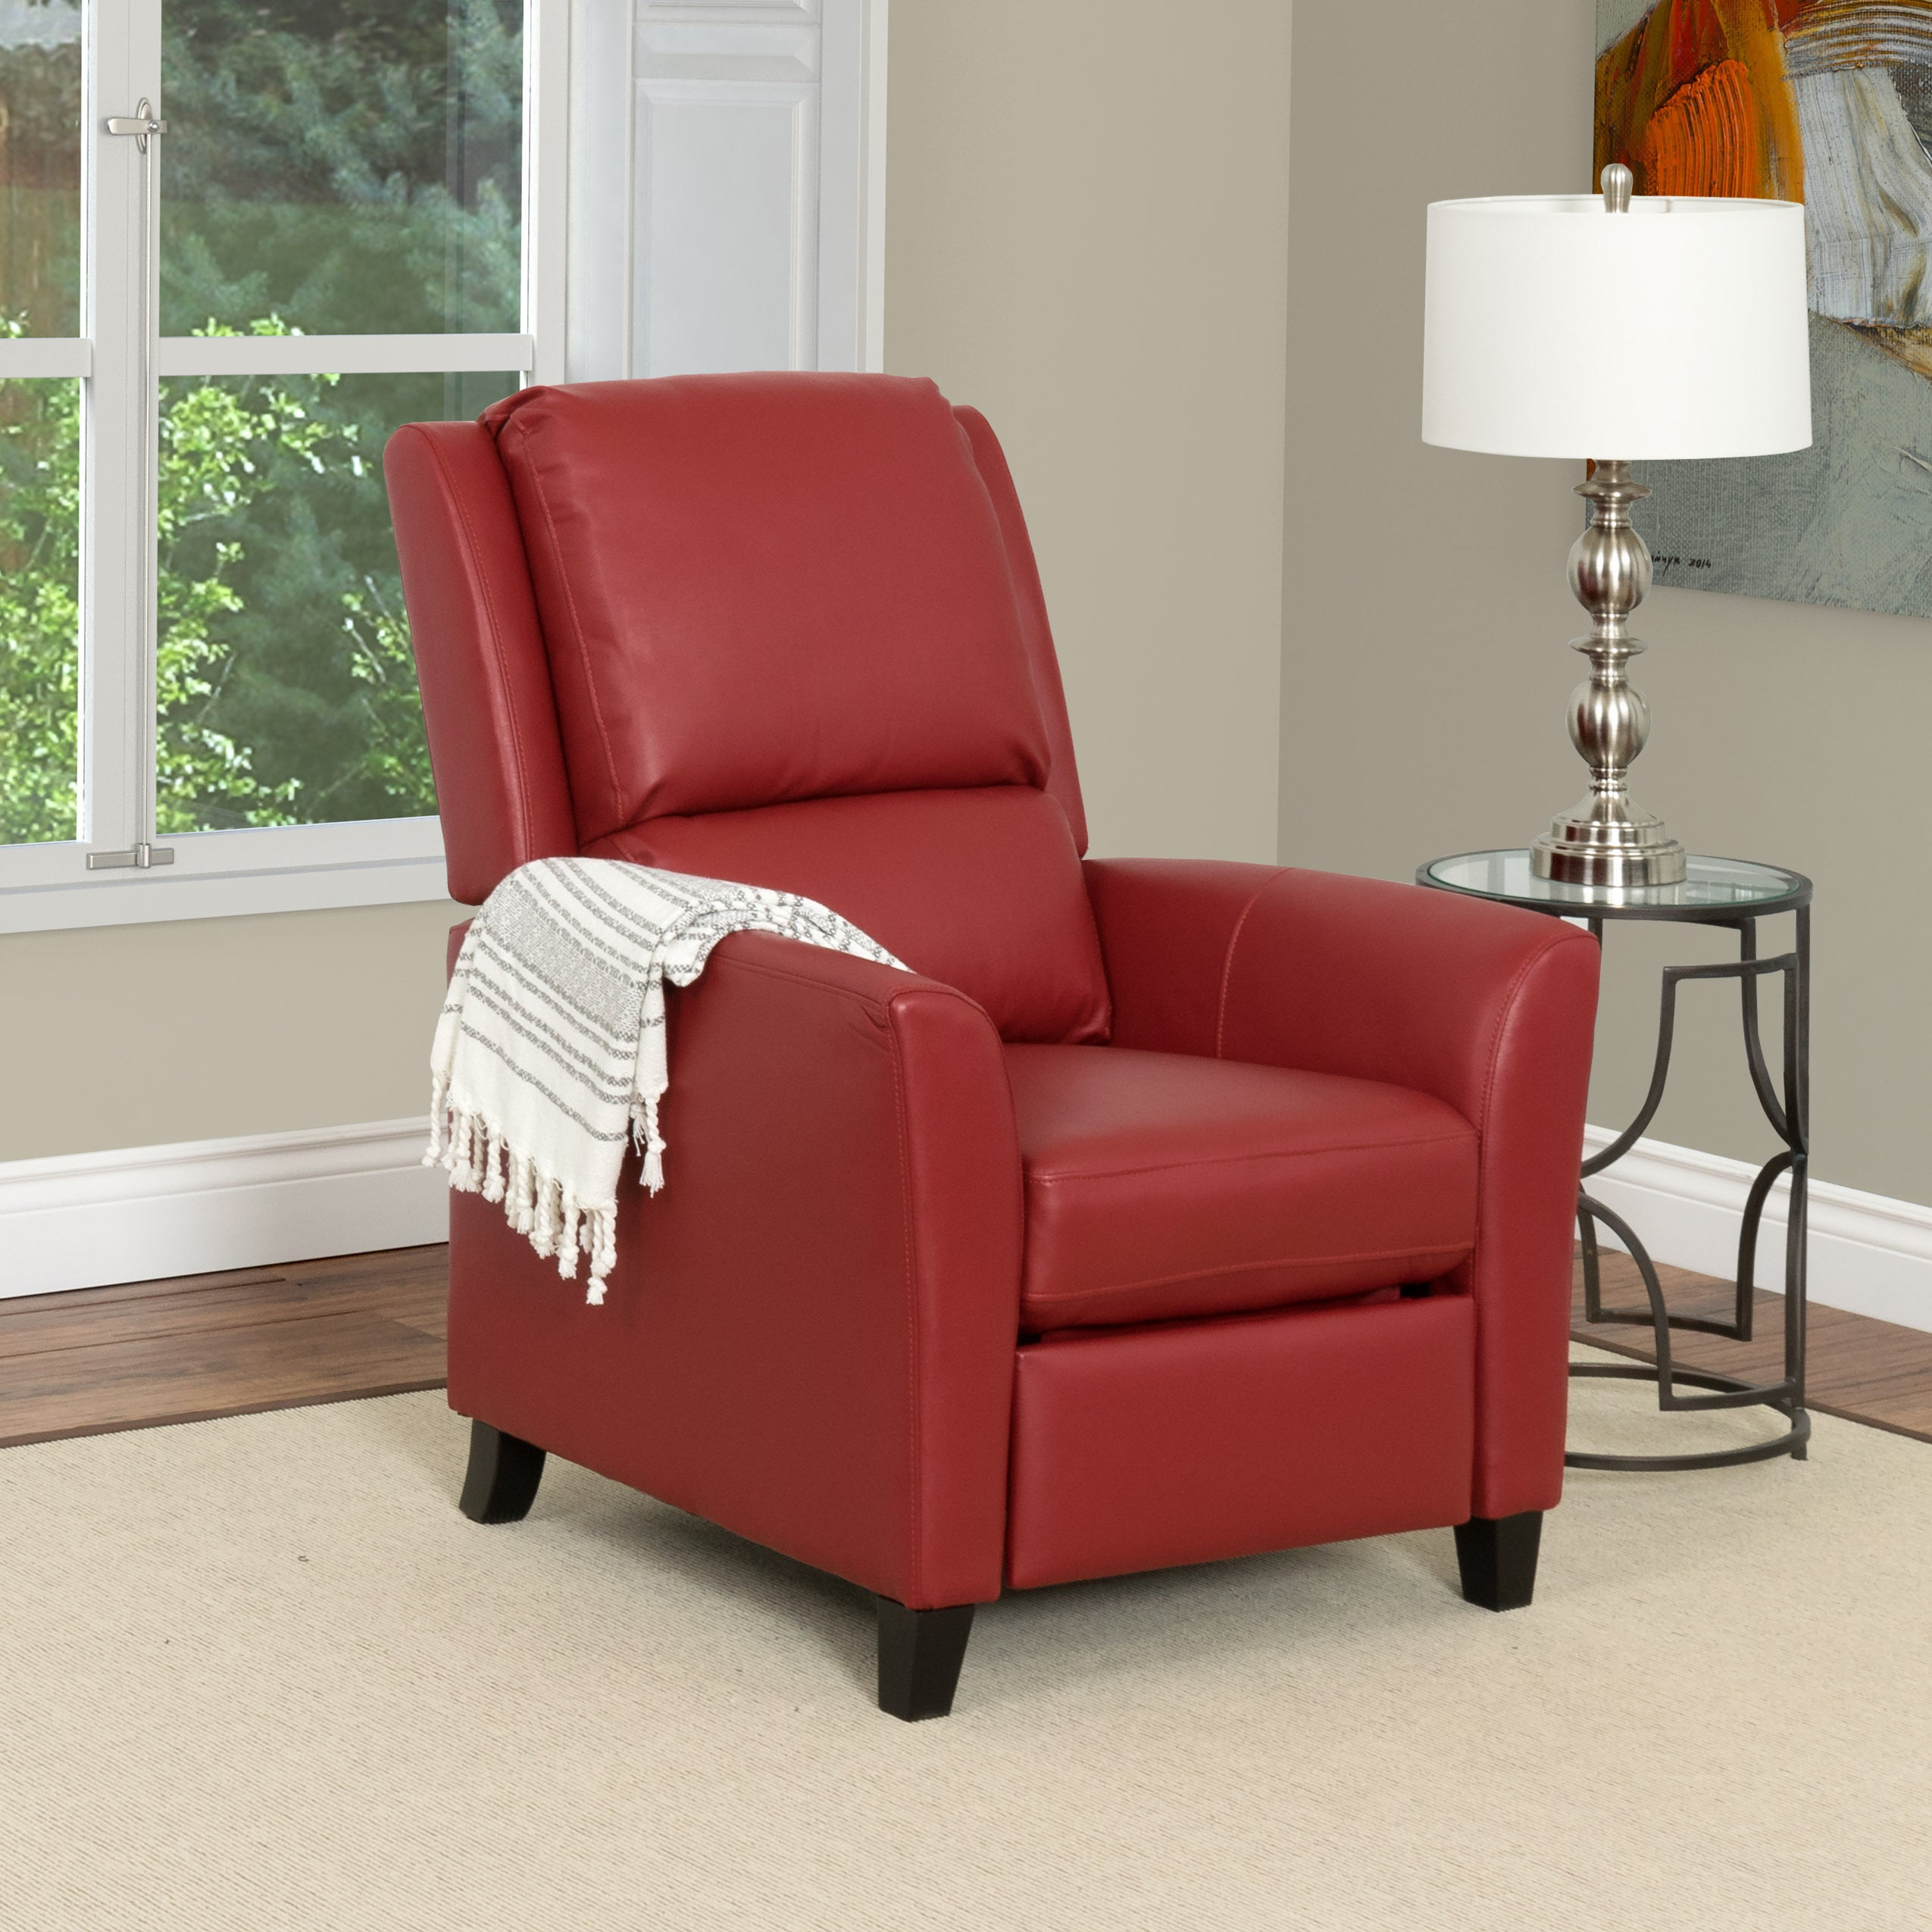 CorLiving Kate Bonded Leather and Wood Recliner (Red), Si...